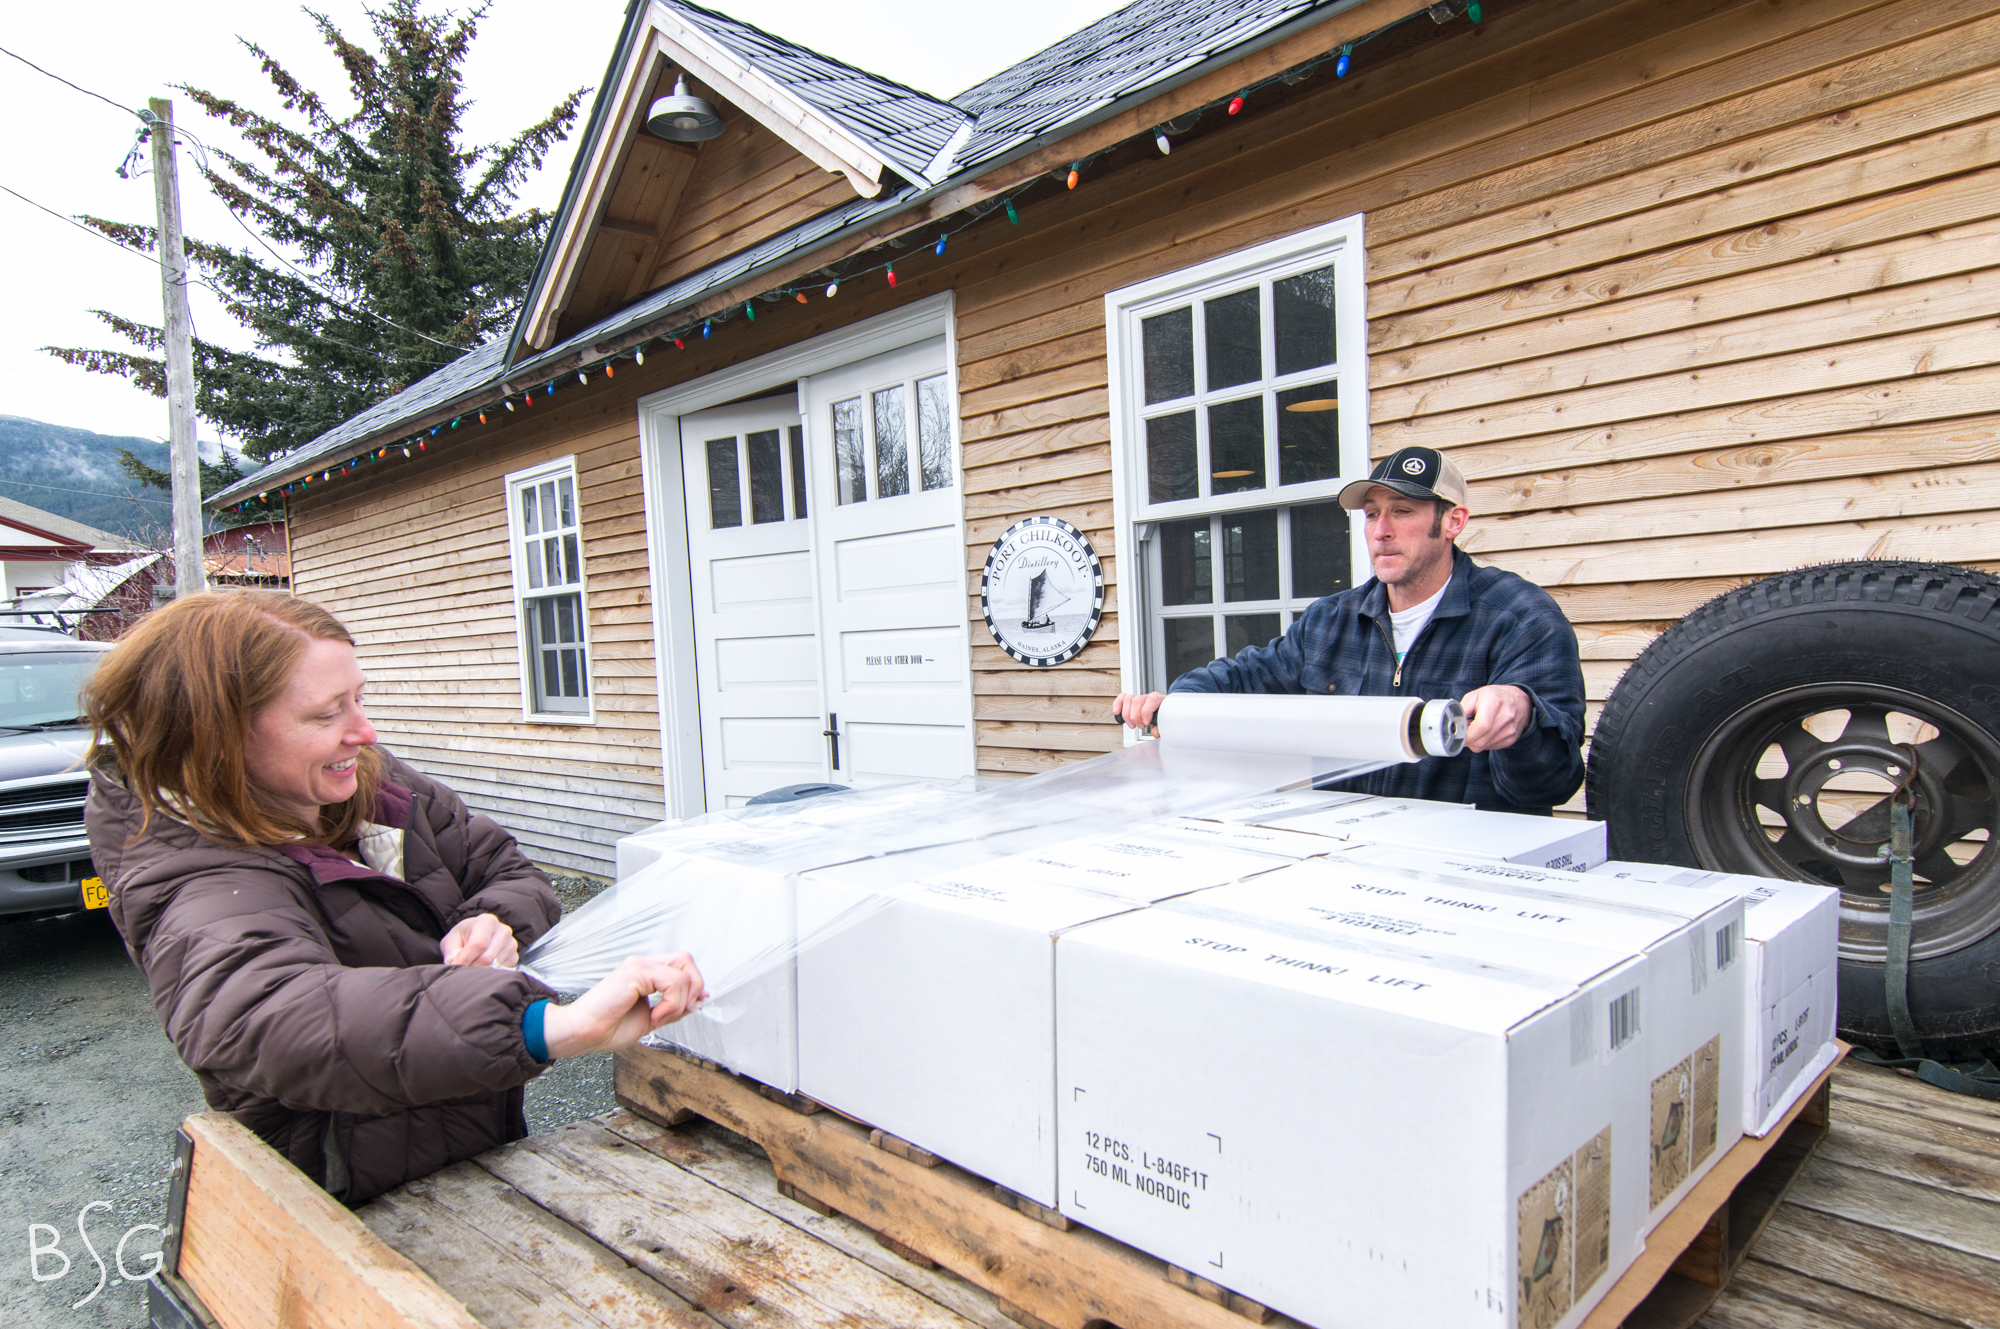 Shade and Copeland package a batch of 50 Fathoms Gin for shipment to Juneau in front of the distillery. The couple renovated the building using local wood and a local workforce.